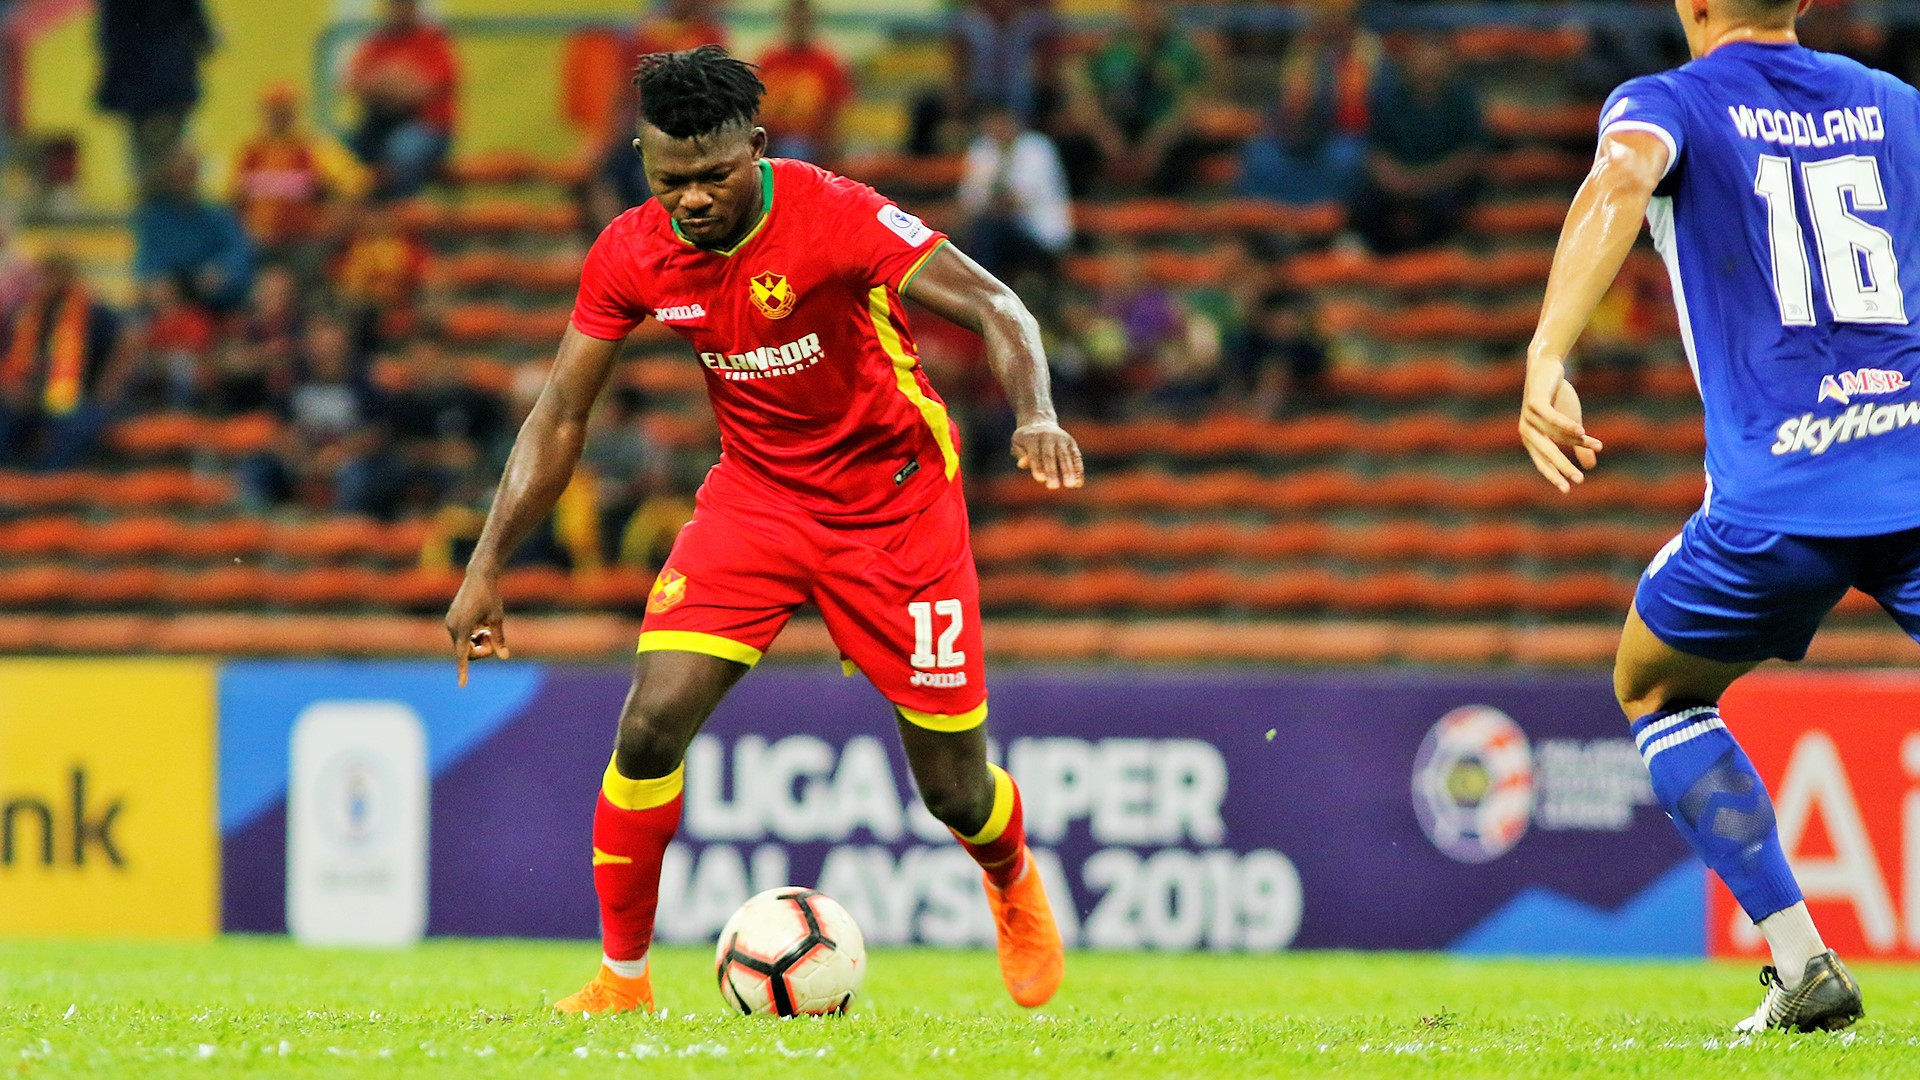 Selangor deny German's axing was racially motivated, Ifedayo defends club and fans